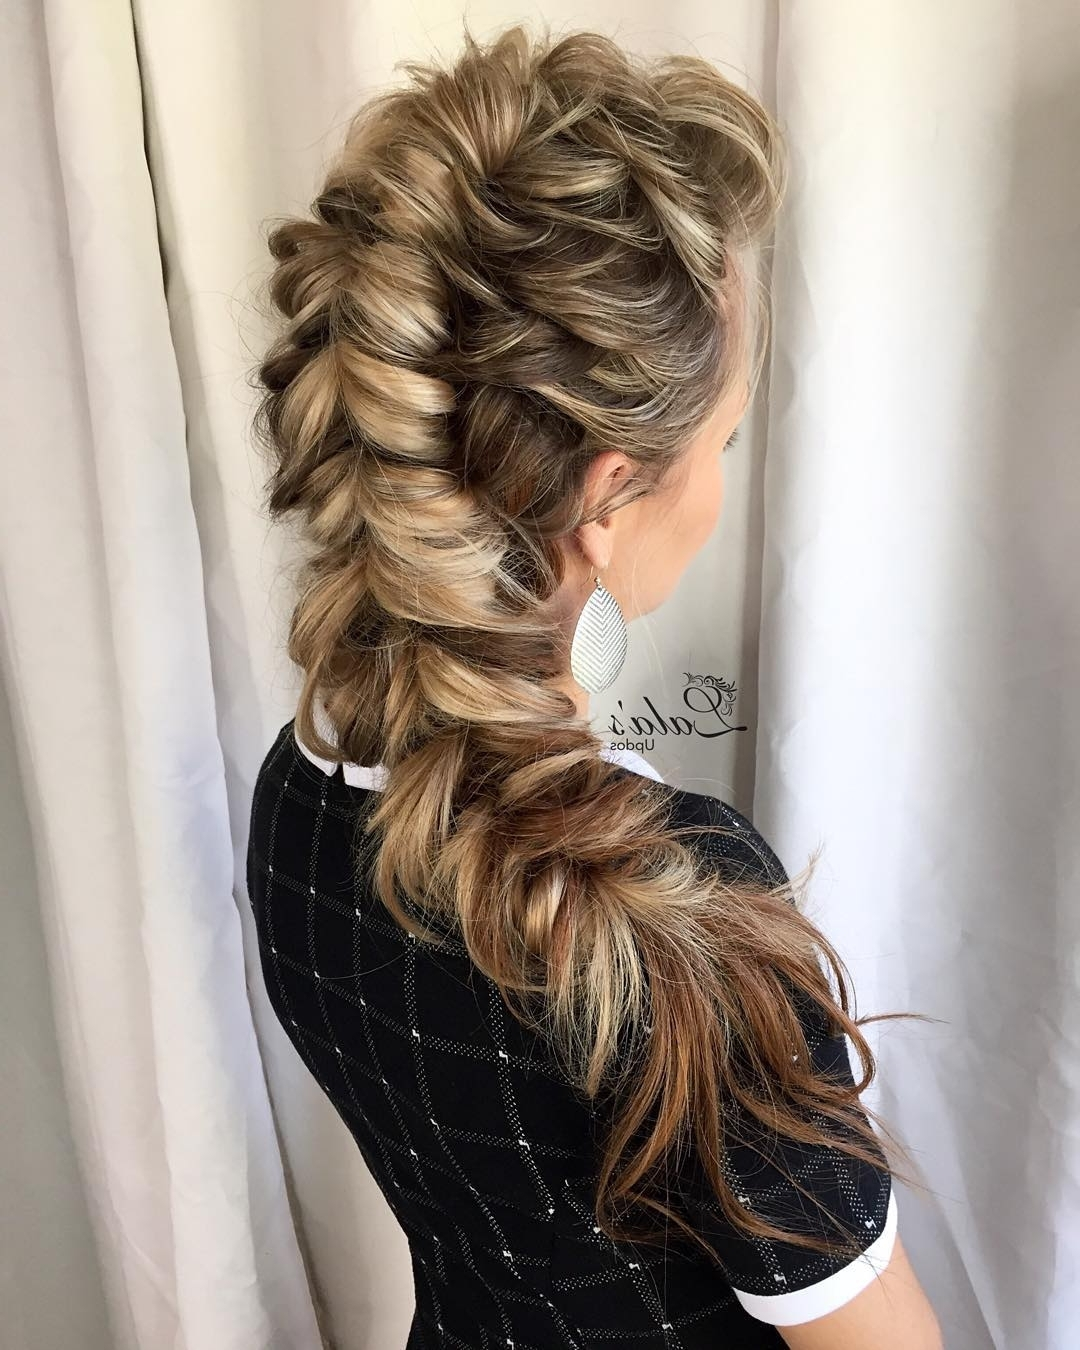 2018 Chunky Ponytail Fishtail Braid Hairstyles For 20 Ways To Style A Pull Through Braid (2018 Definitive Guide) (View 2 of 20)